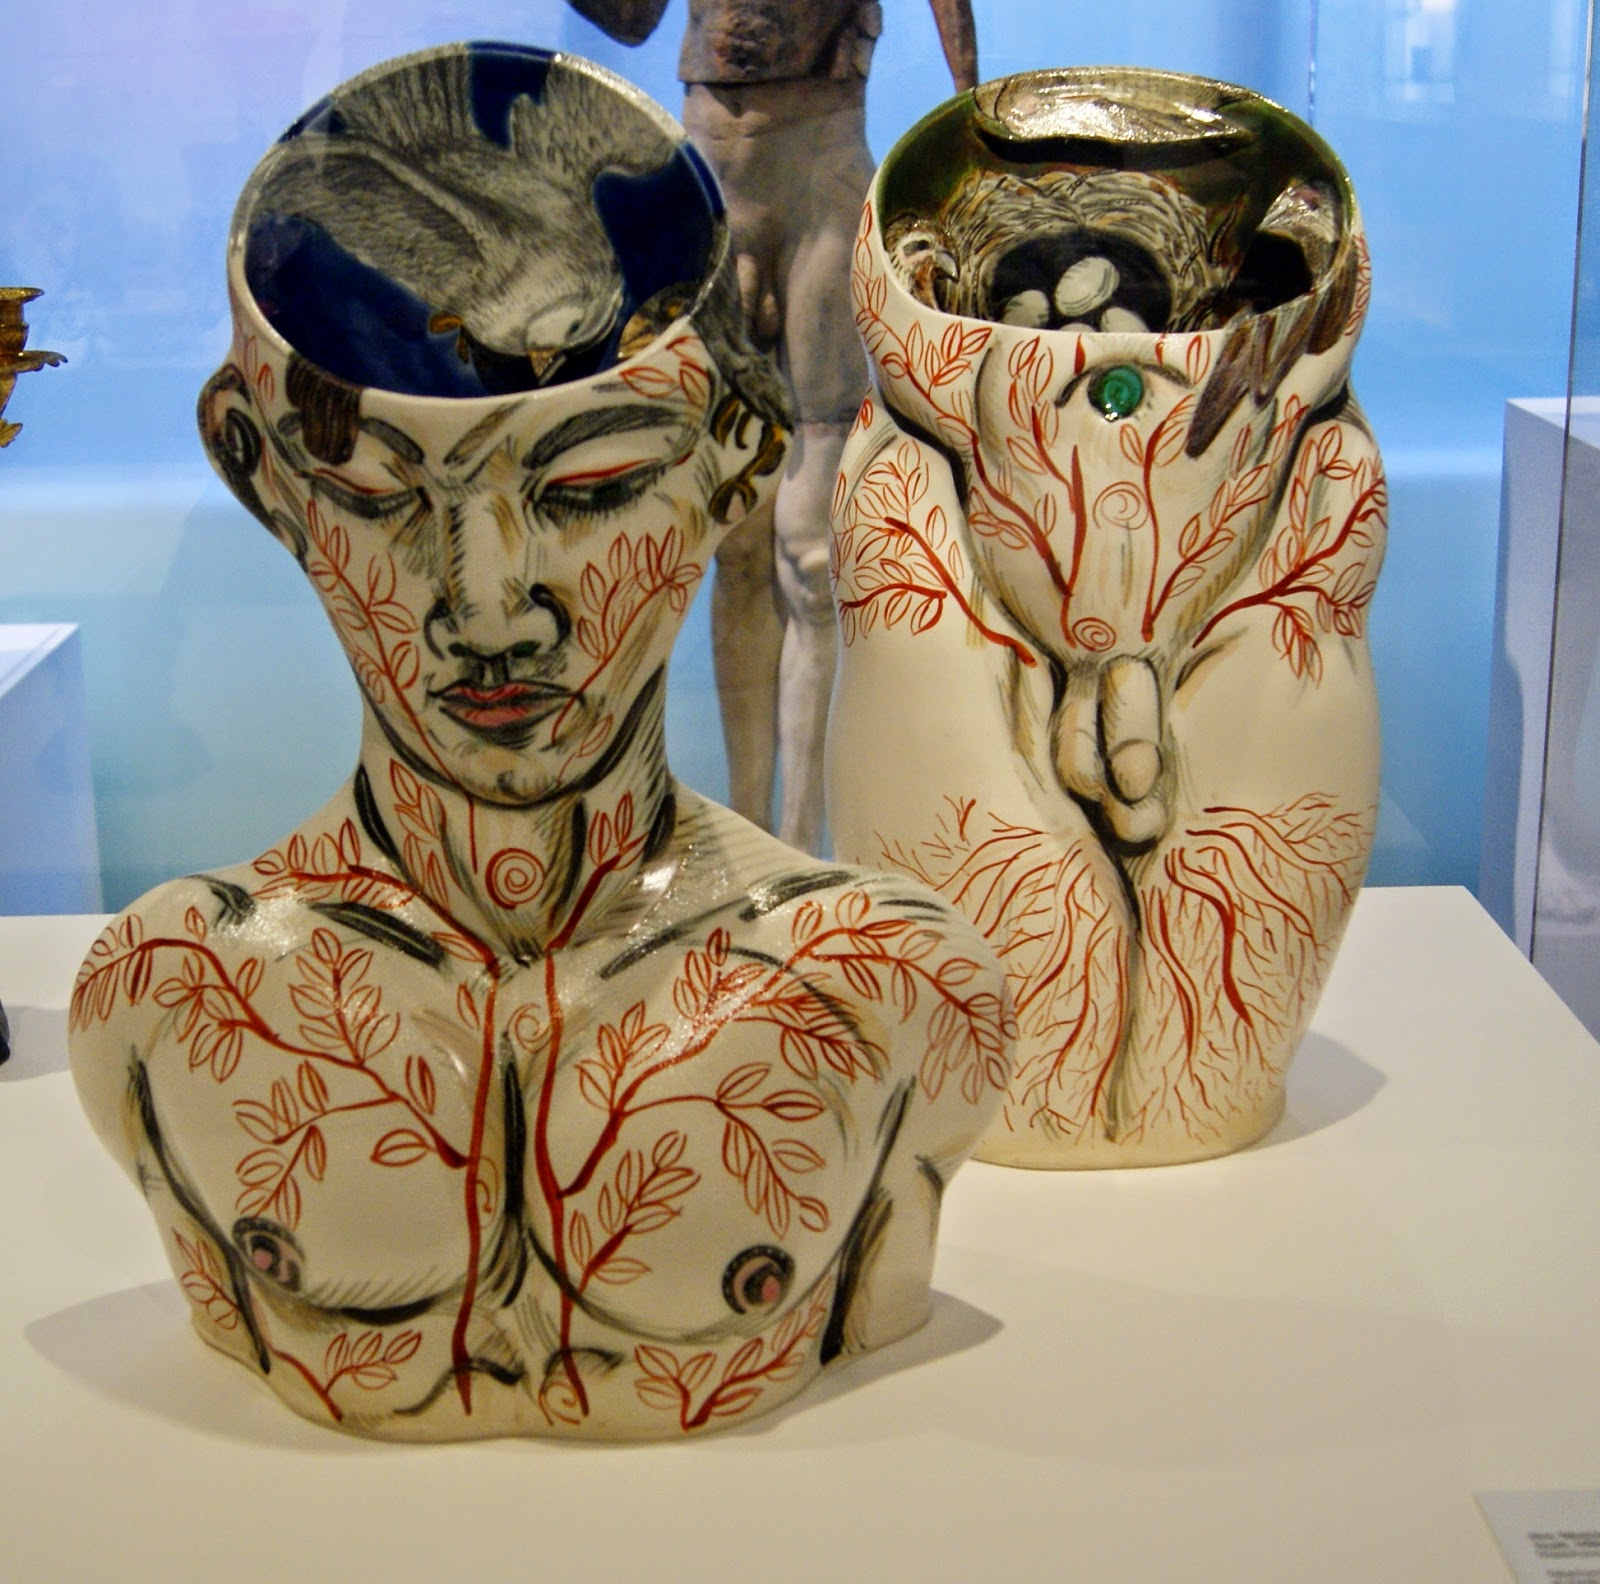 Gardiner Museum of Ceramic Art in Toronto, Artmatters, Culture, Ontario, Canada, MelaniePs, The Purple Scarf, Camp Fires, Exhibit, Exhibition, Modern, Contemporary Gallery, Akio Takamori, Youth